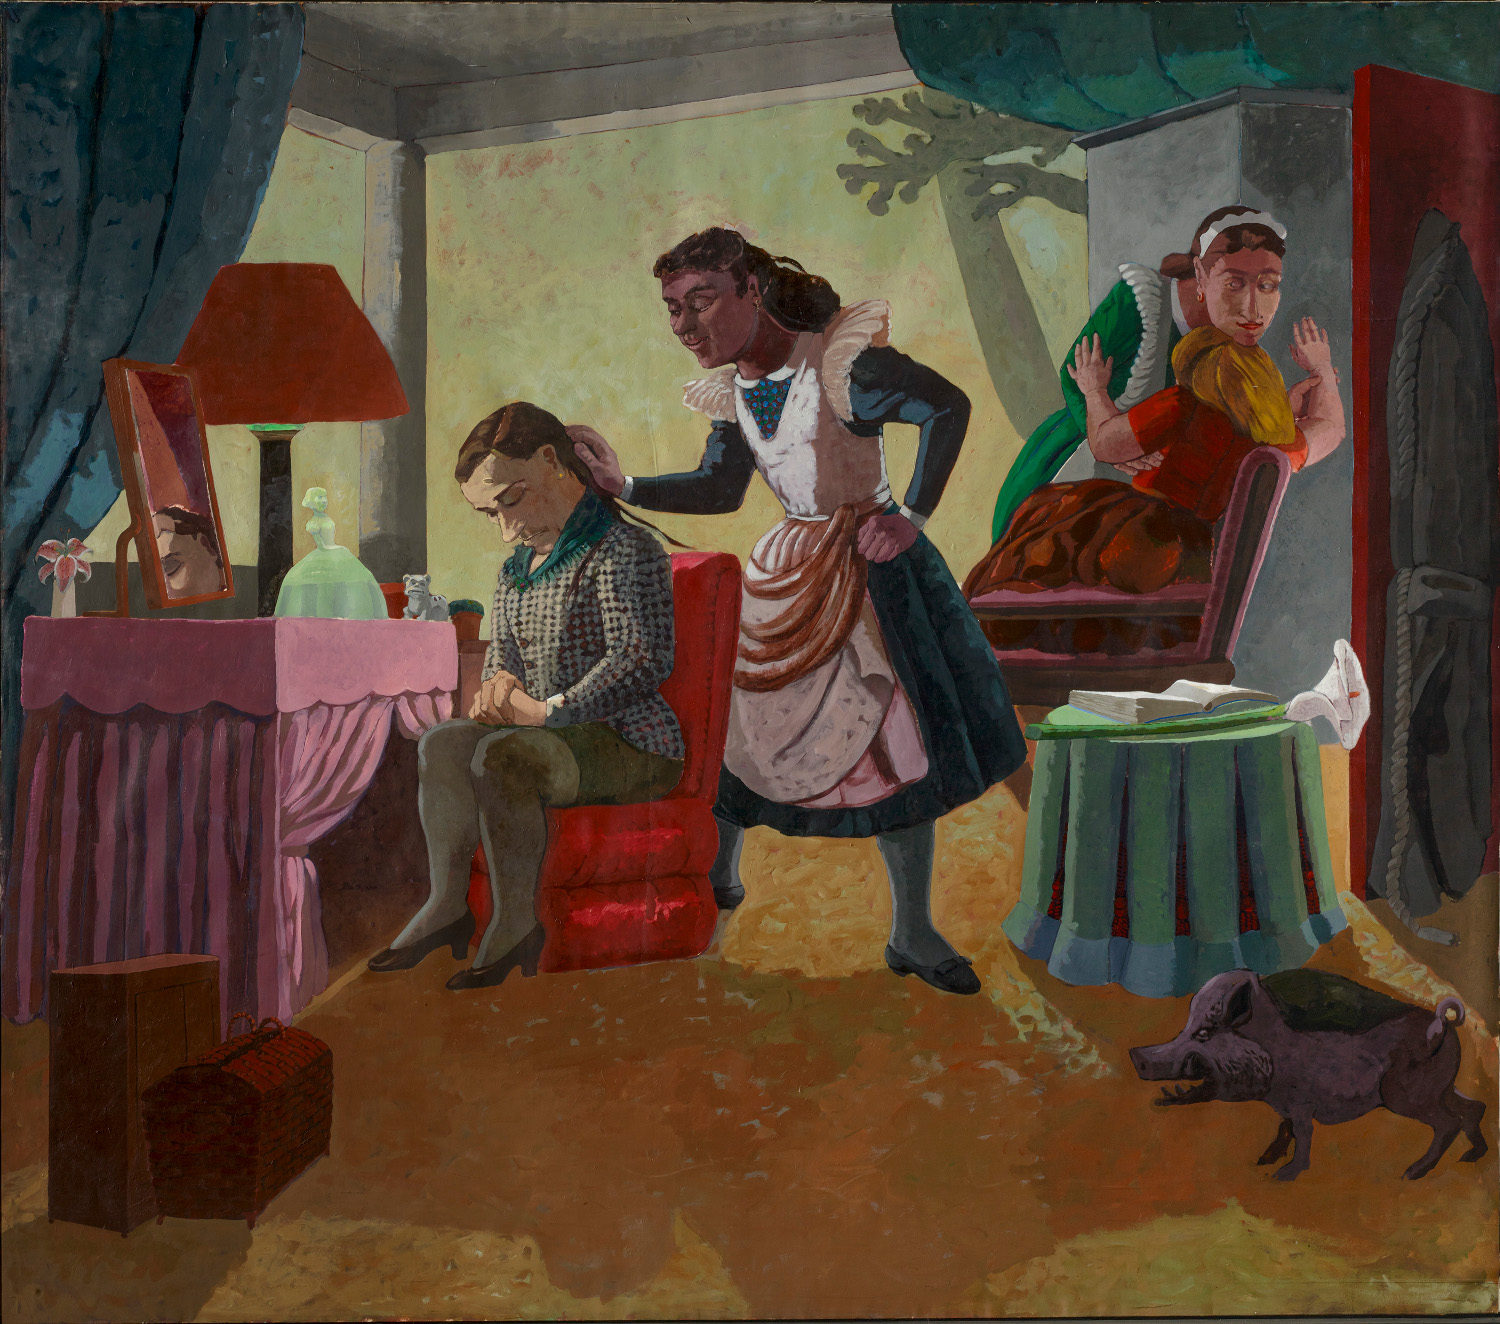 Paula Rego: Once again becoming sublimely unjust - AWARE Artistes femmes / women artists